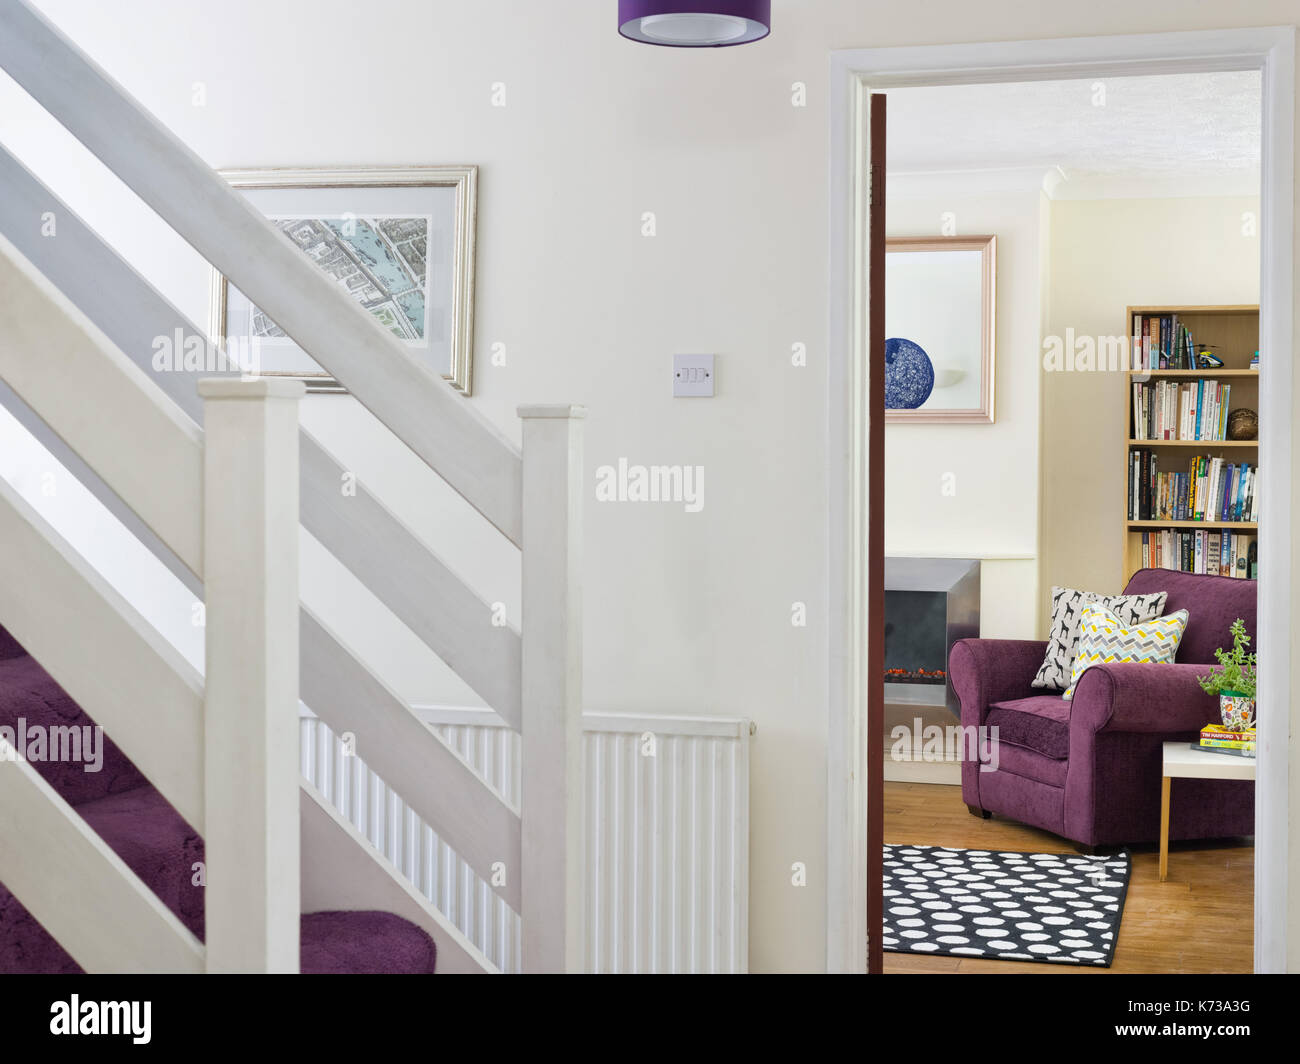 Room Layout Stockfotos & Room Layout Bilder - Alamy